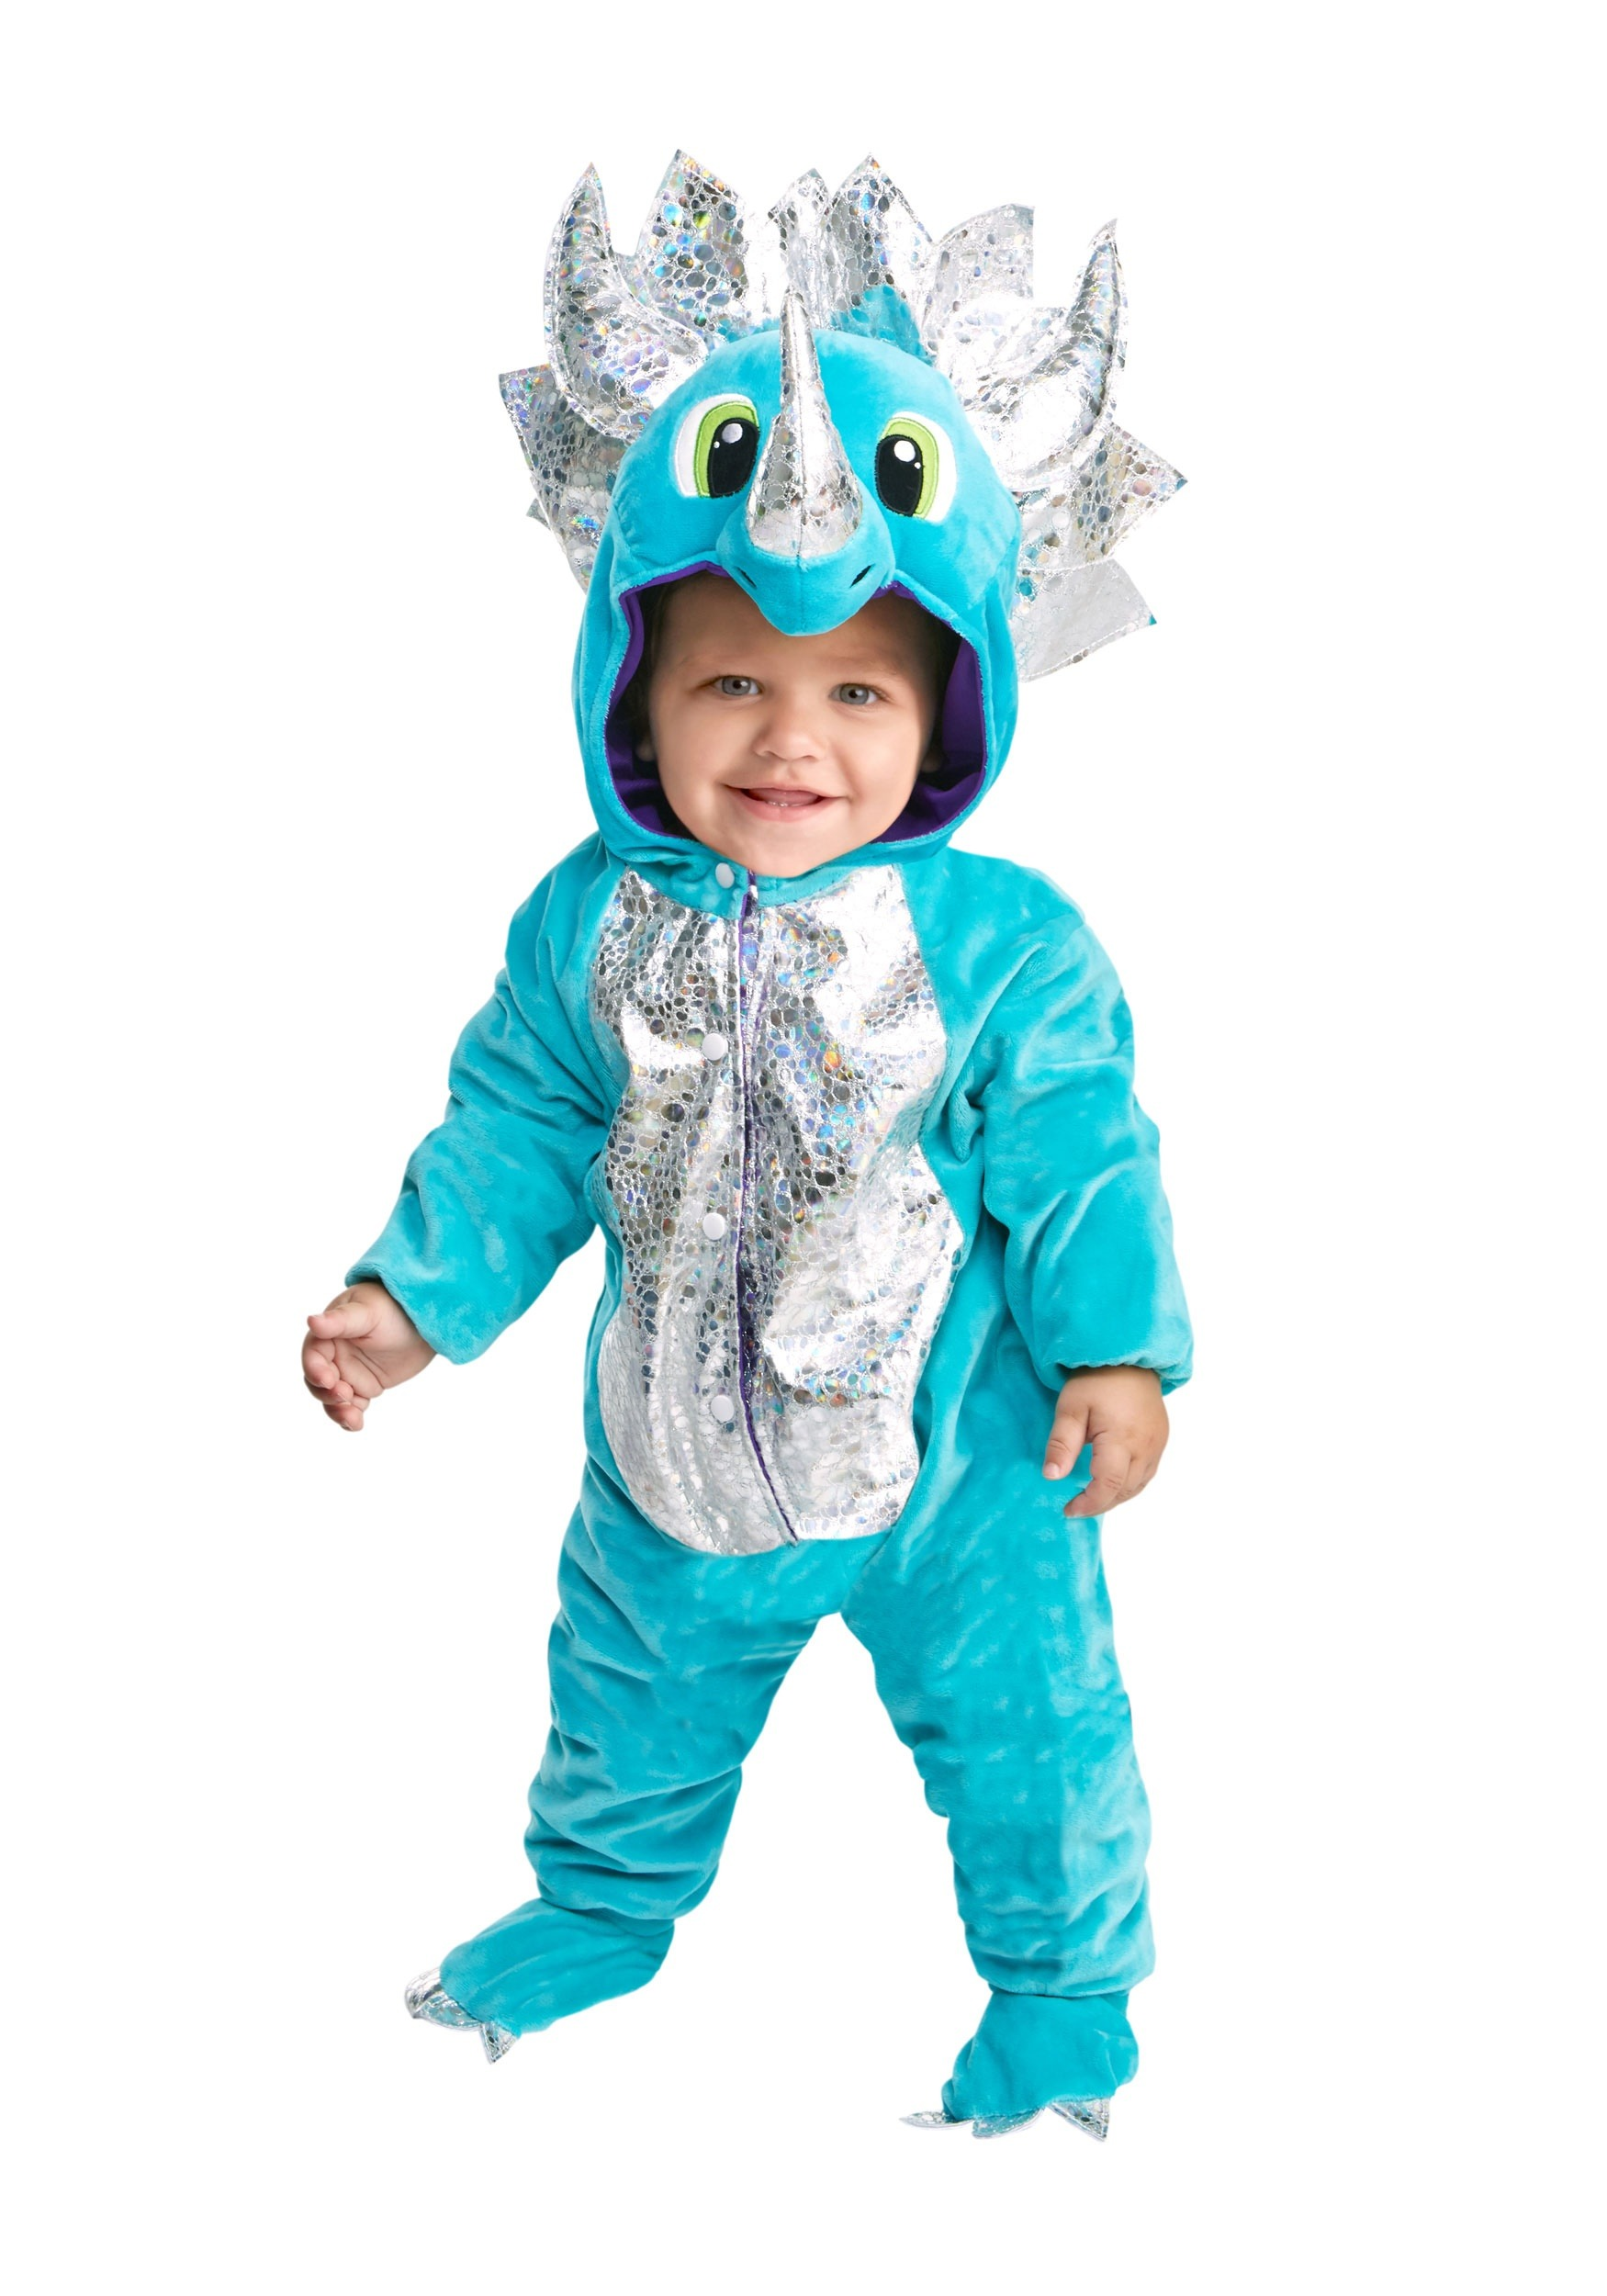 Dinosaur costumes kids toddler dinosaur halloween costume darling dinosaur infanttoddler costume solutioingenieria Gallery